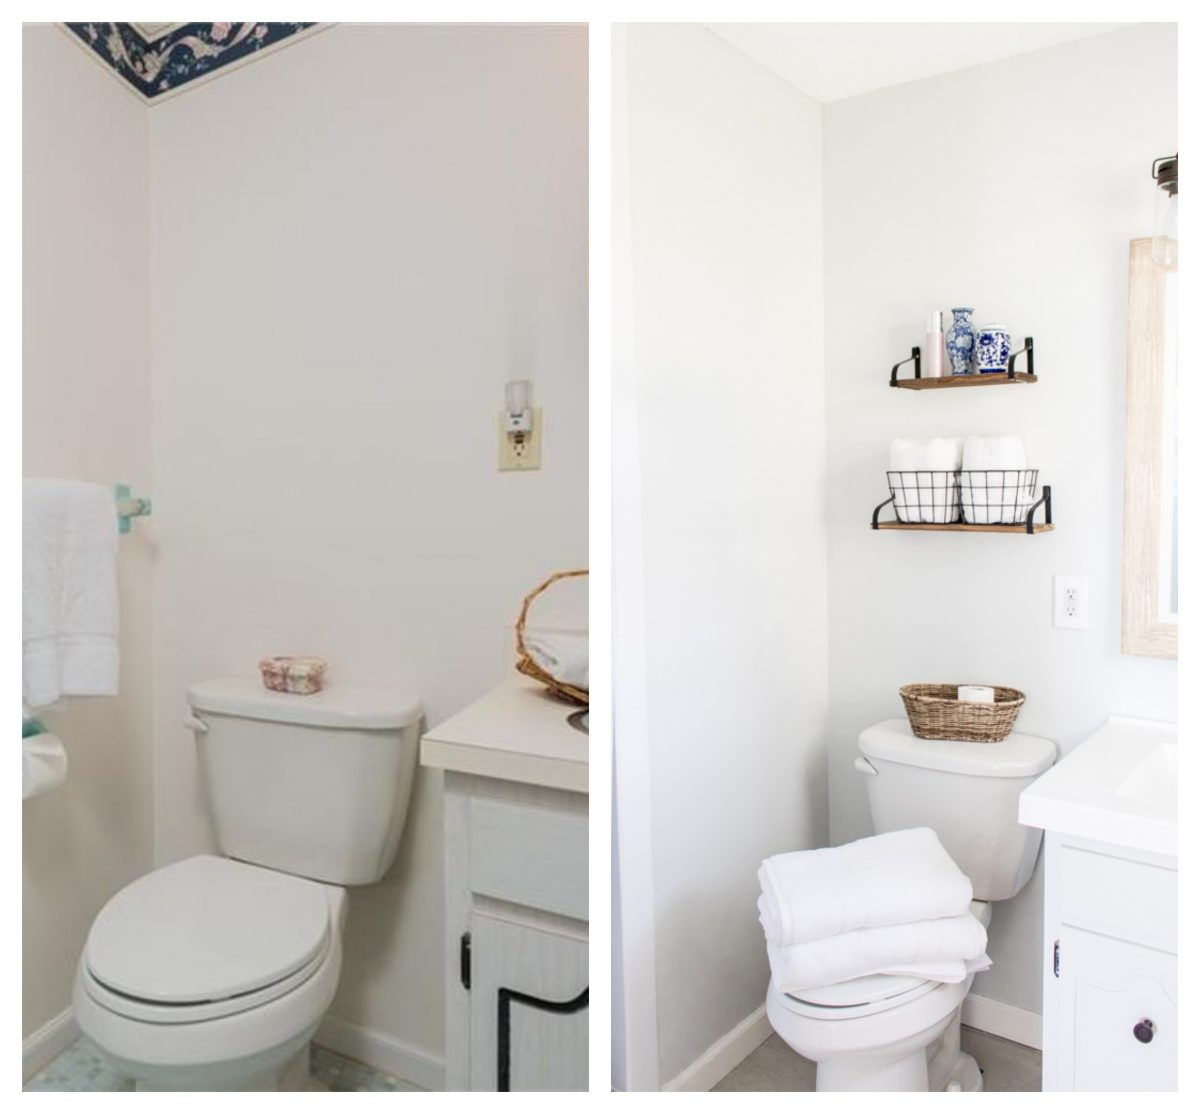 Bathroom Toilet Area Before and After